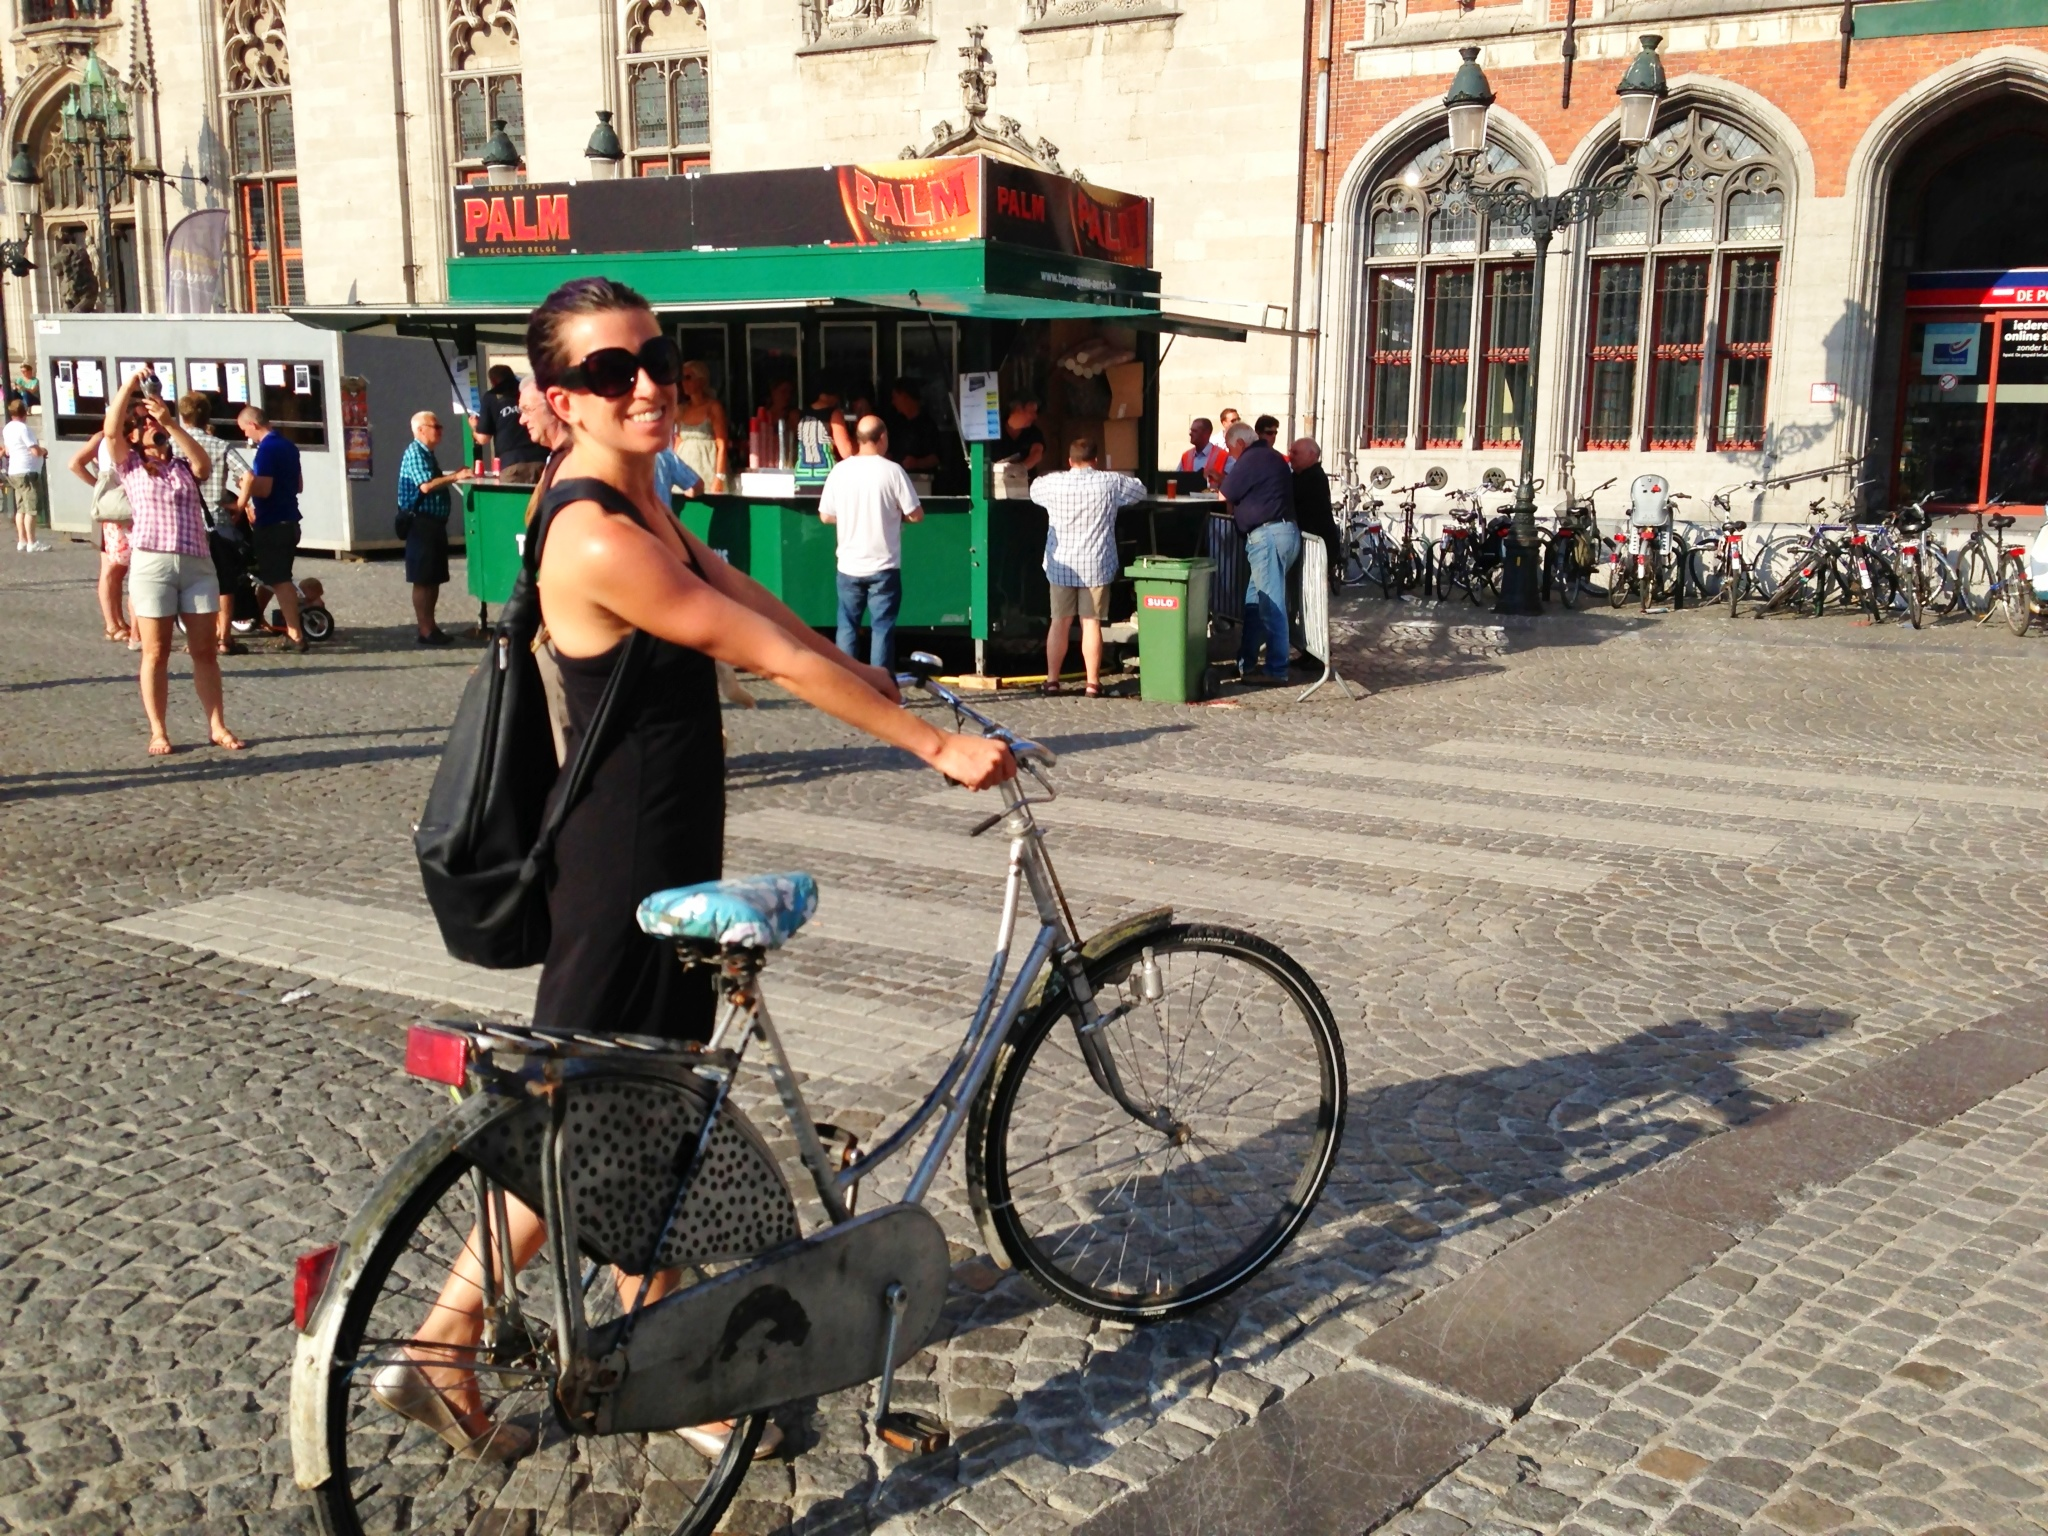 You need a bike in Bruges!